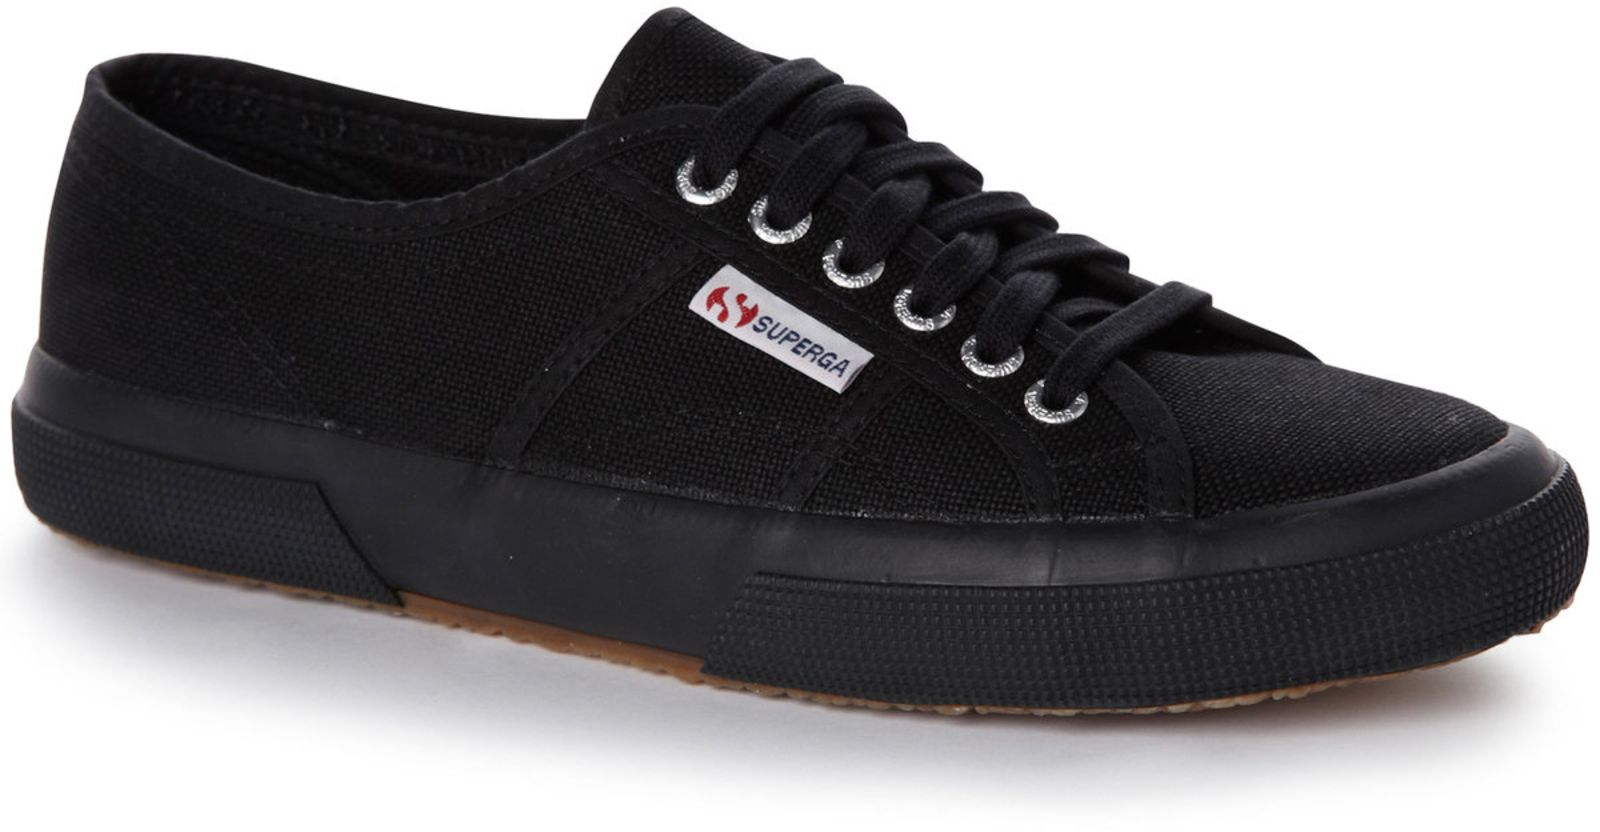 Superga 2750 Cotu Womens Trainers Full Black Full Black - UK 6 (EU 39.5)